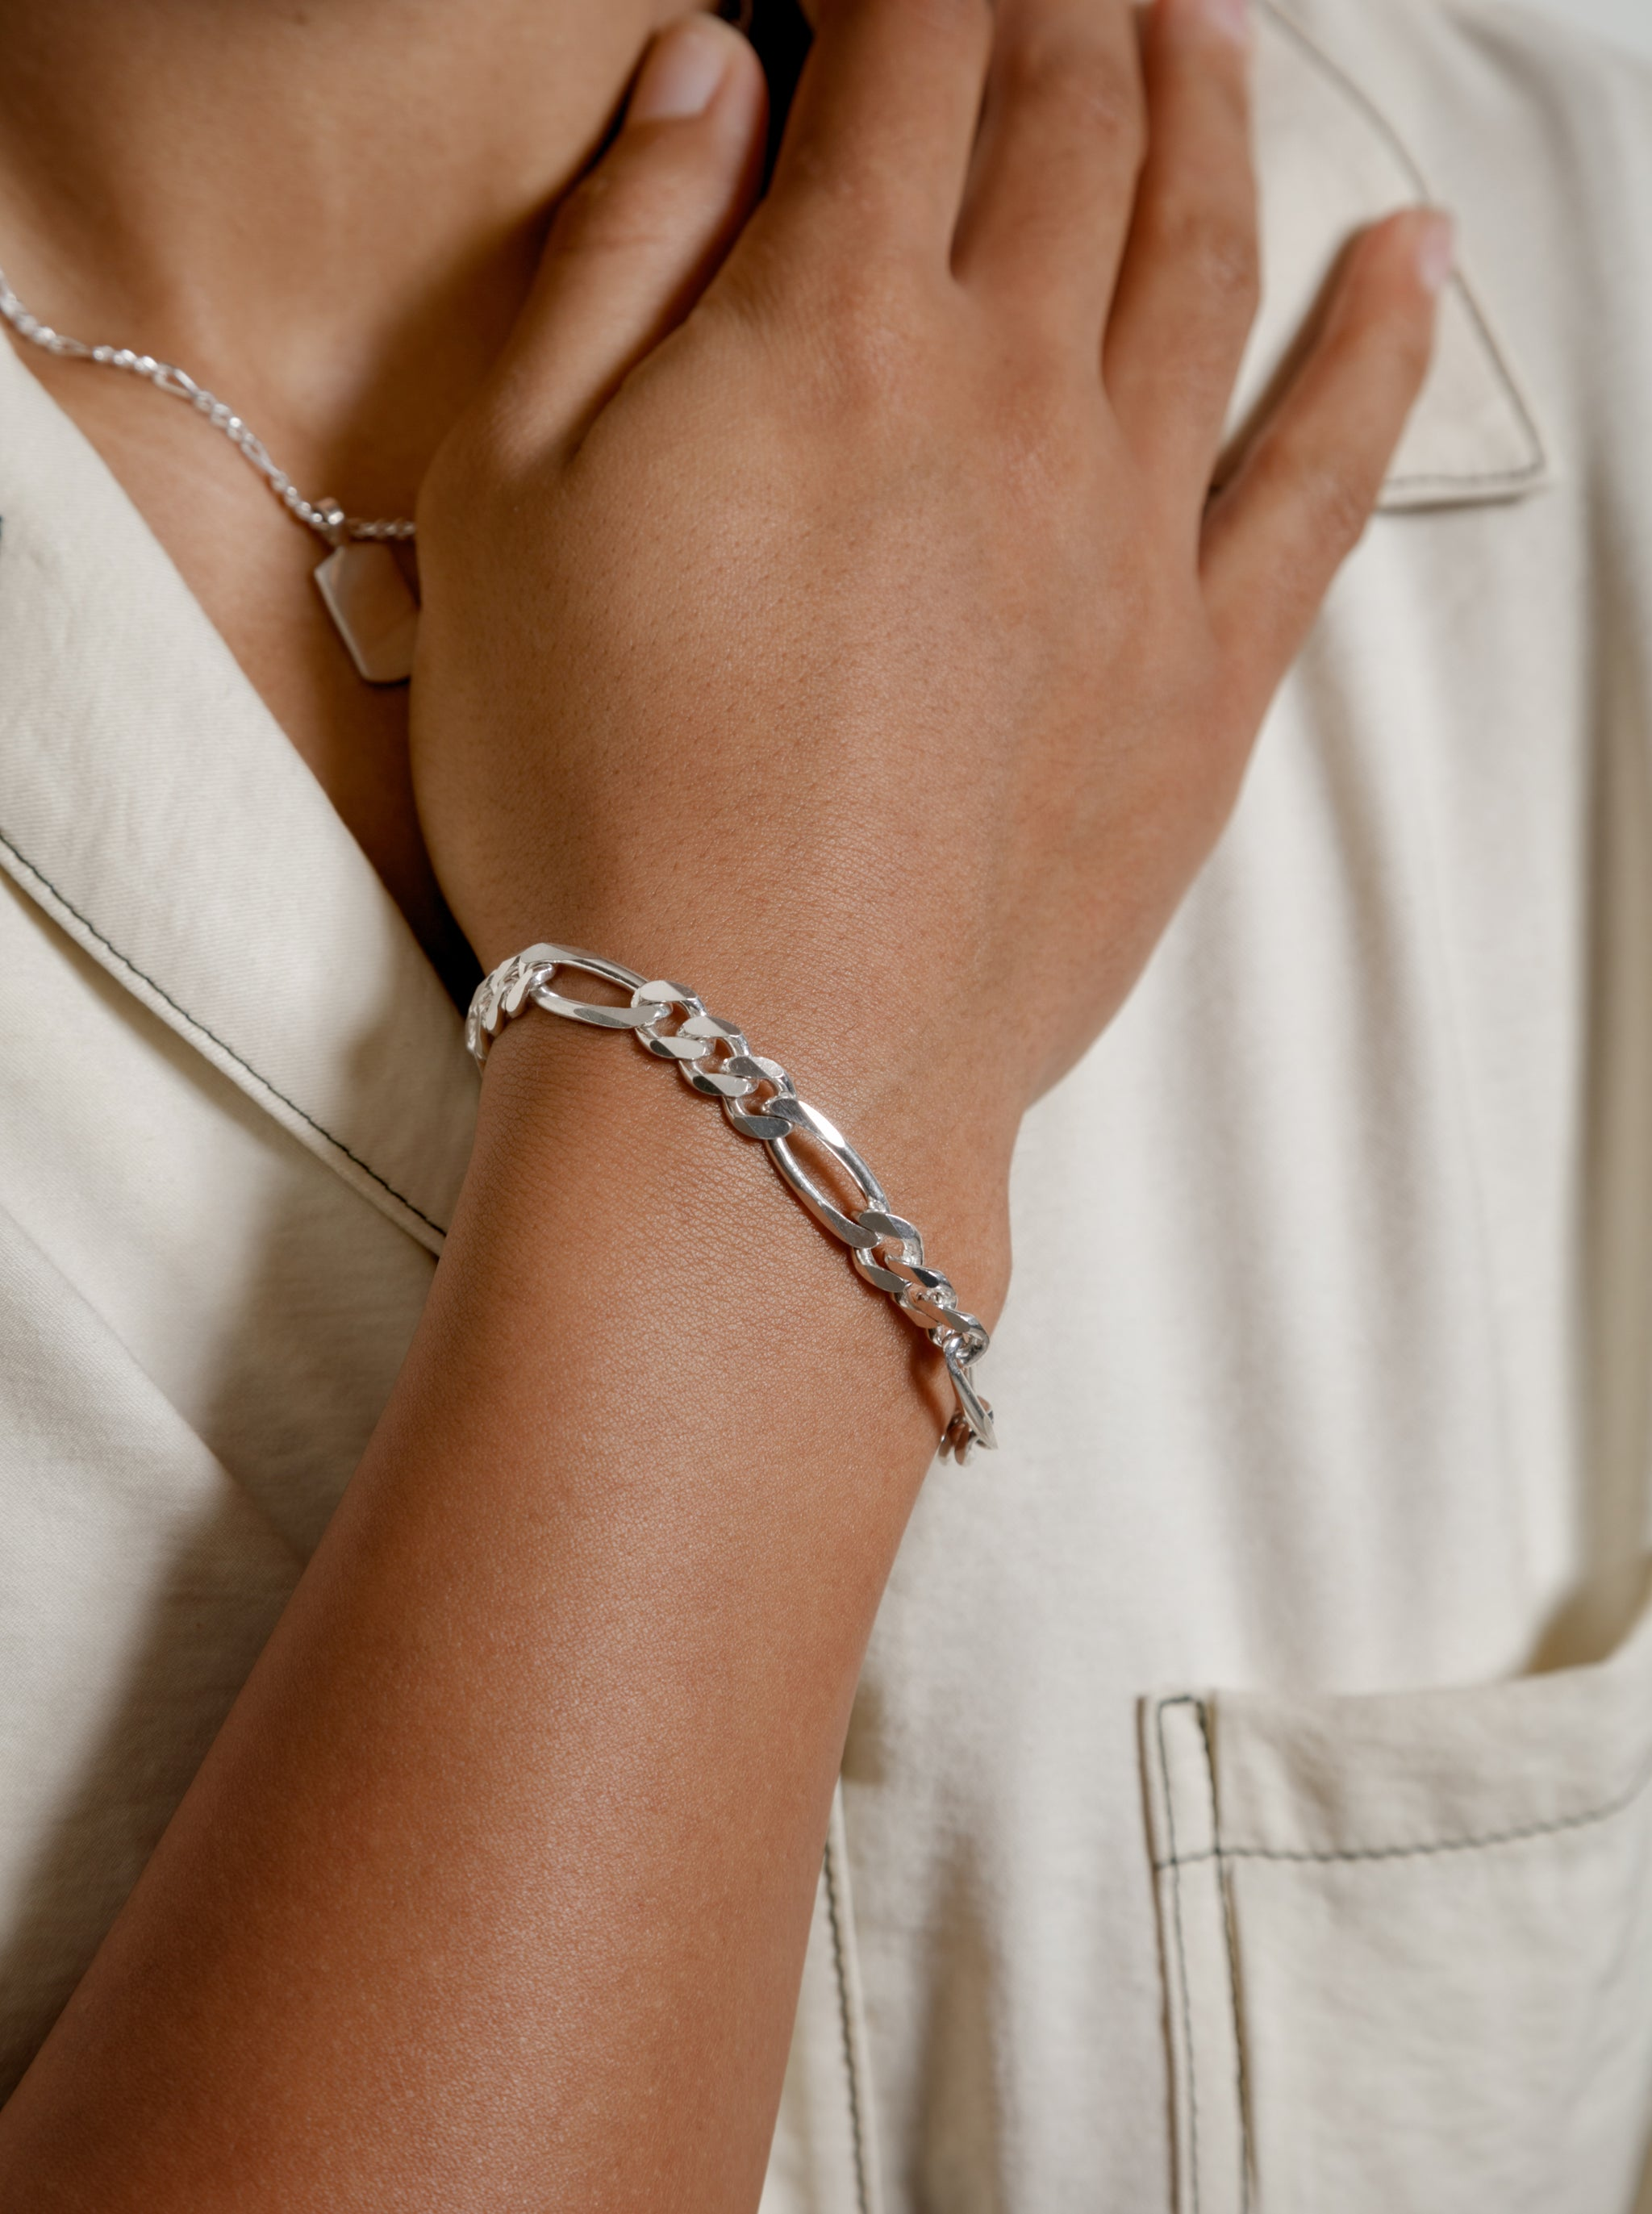 Michelle Bracelet in Sterling Silver